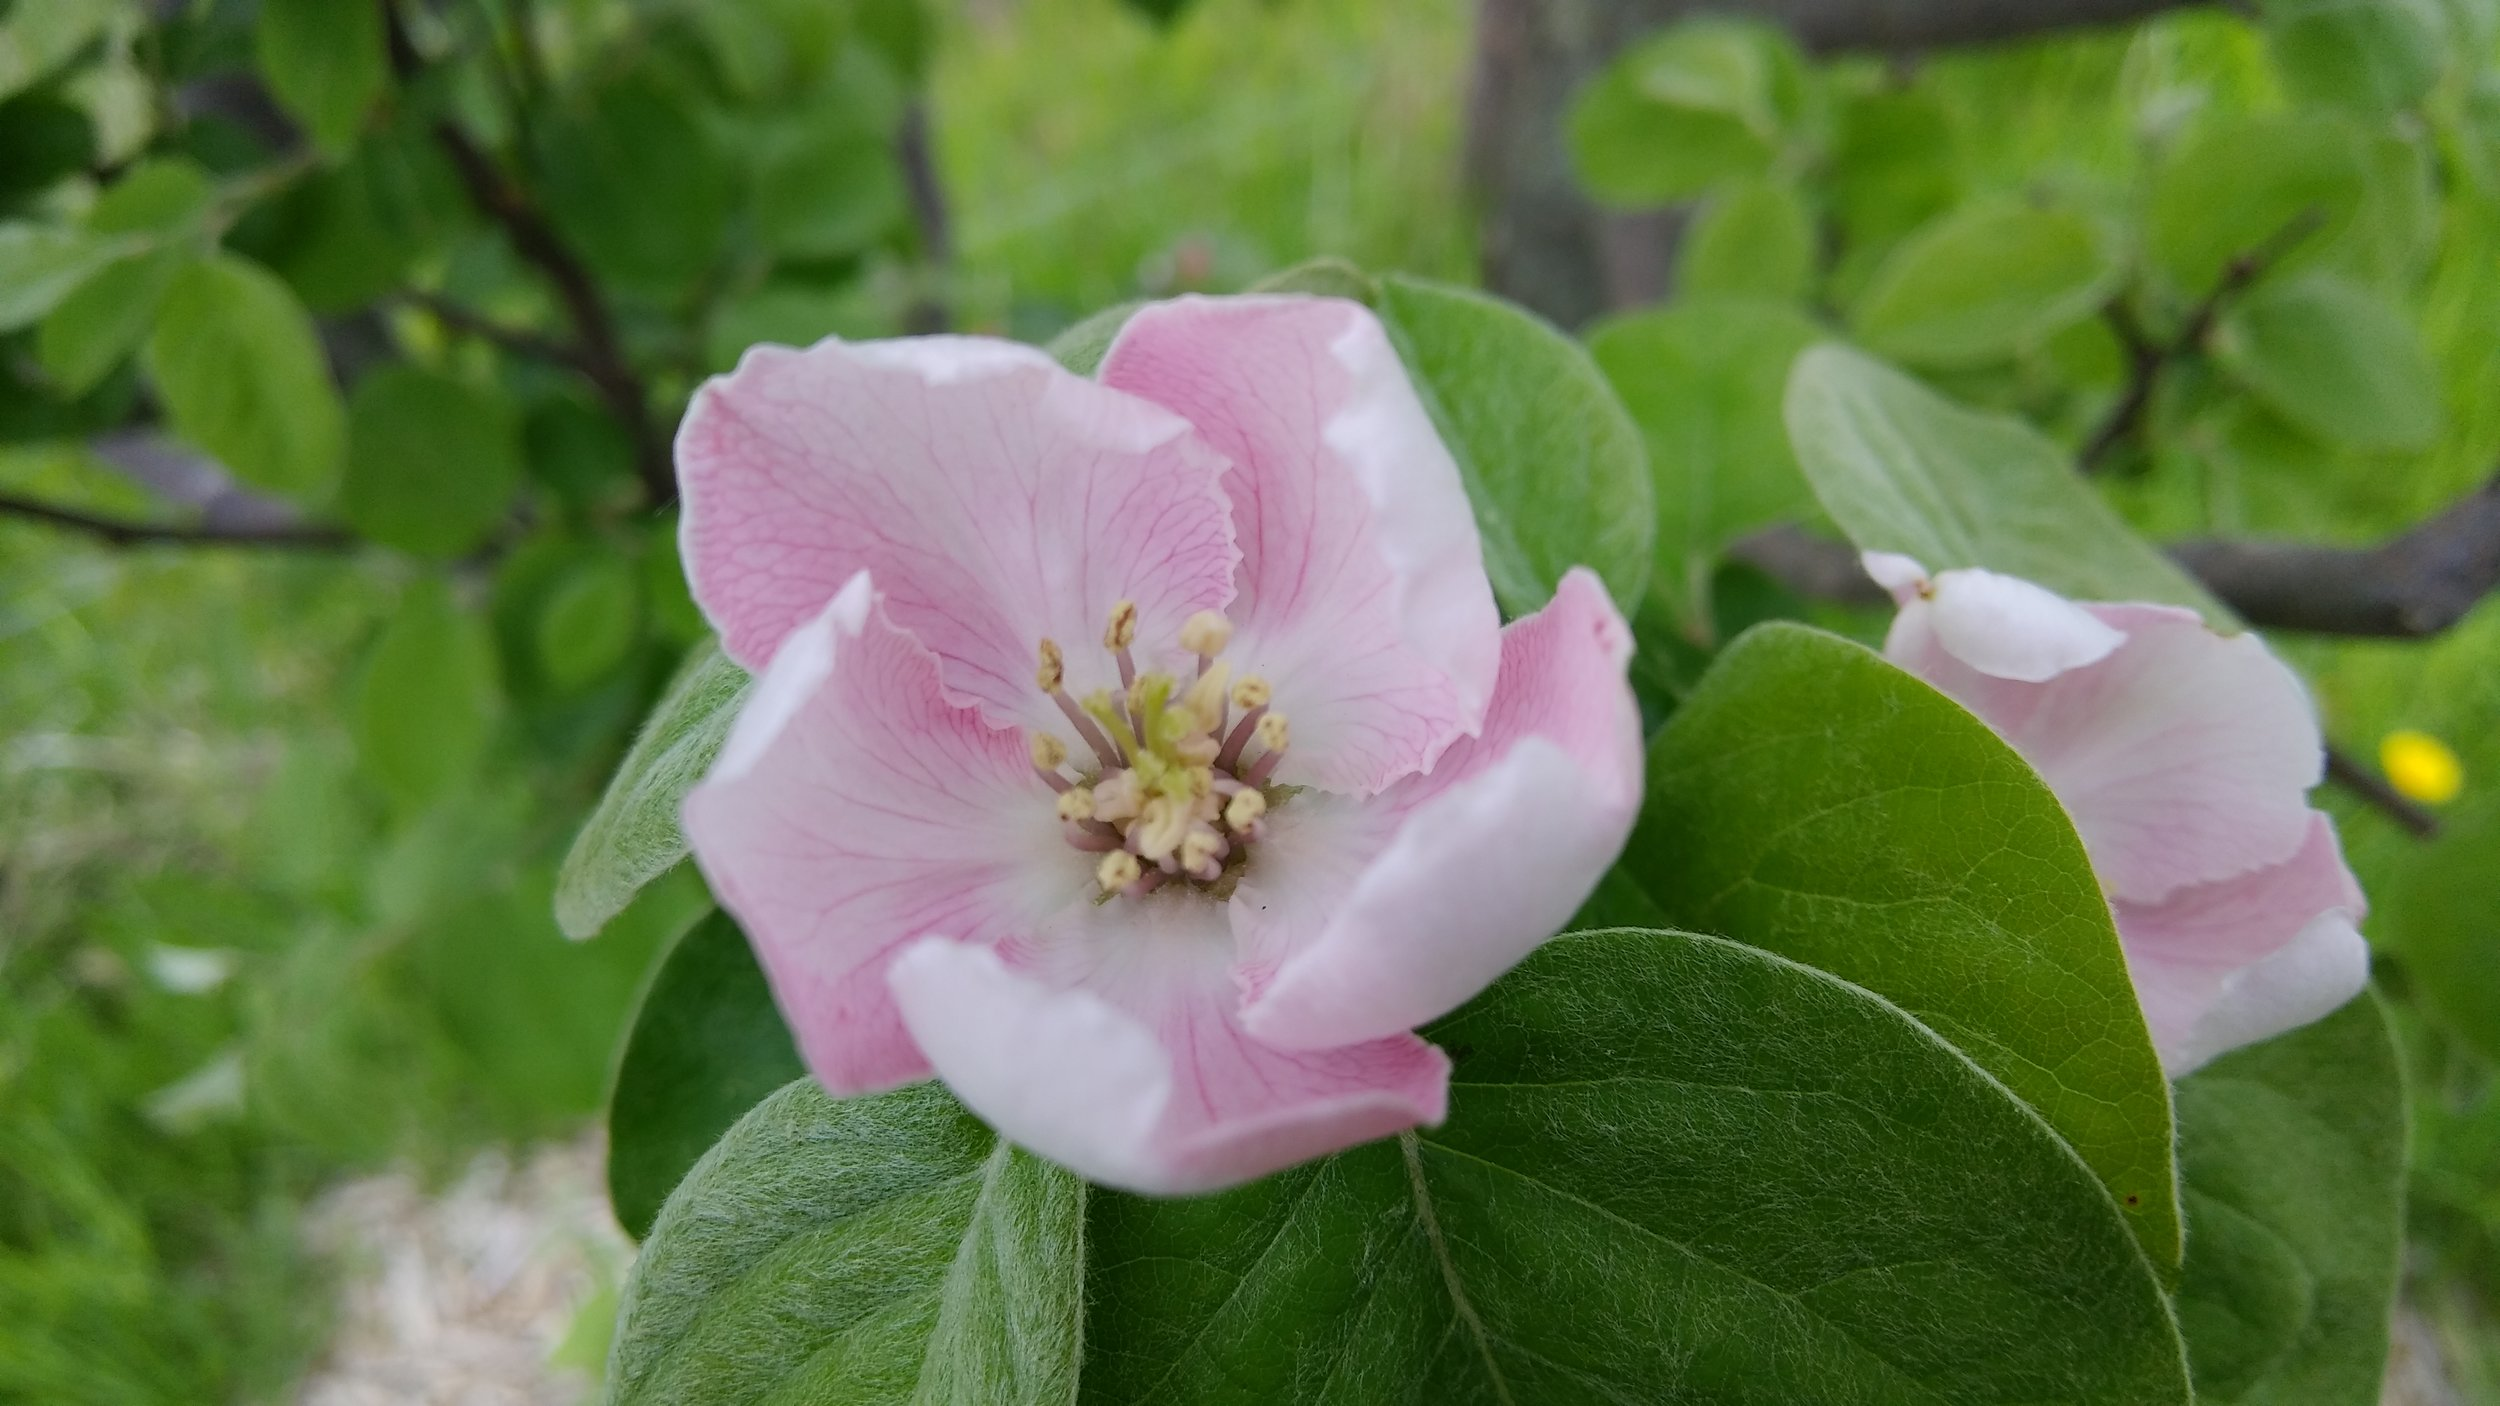 Quince blossom bliss. Photo by Rob McClure